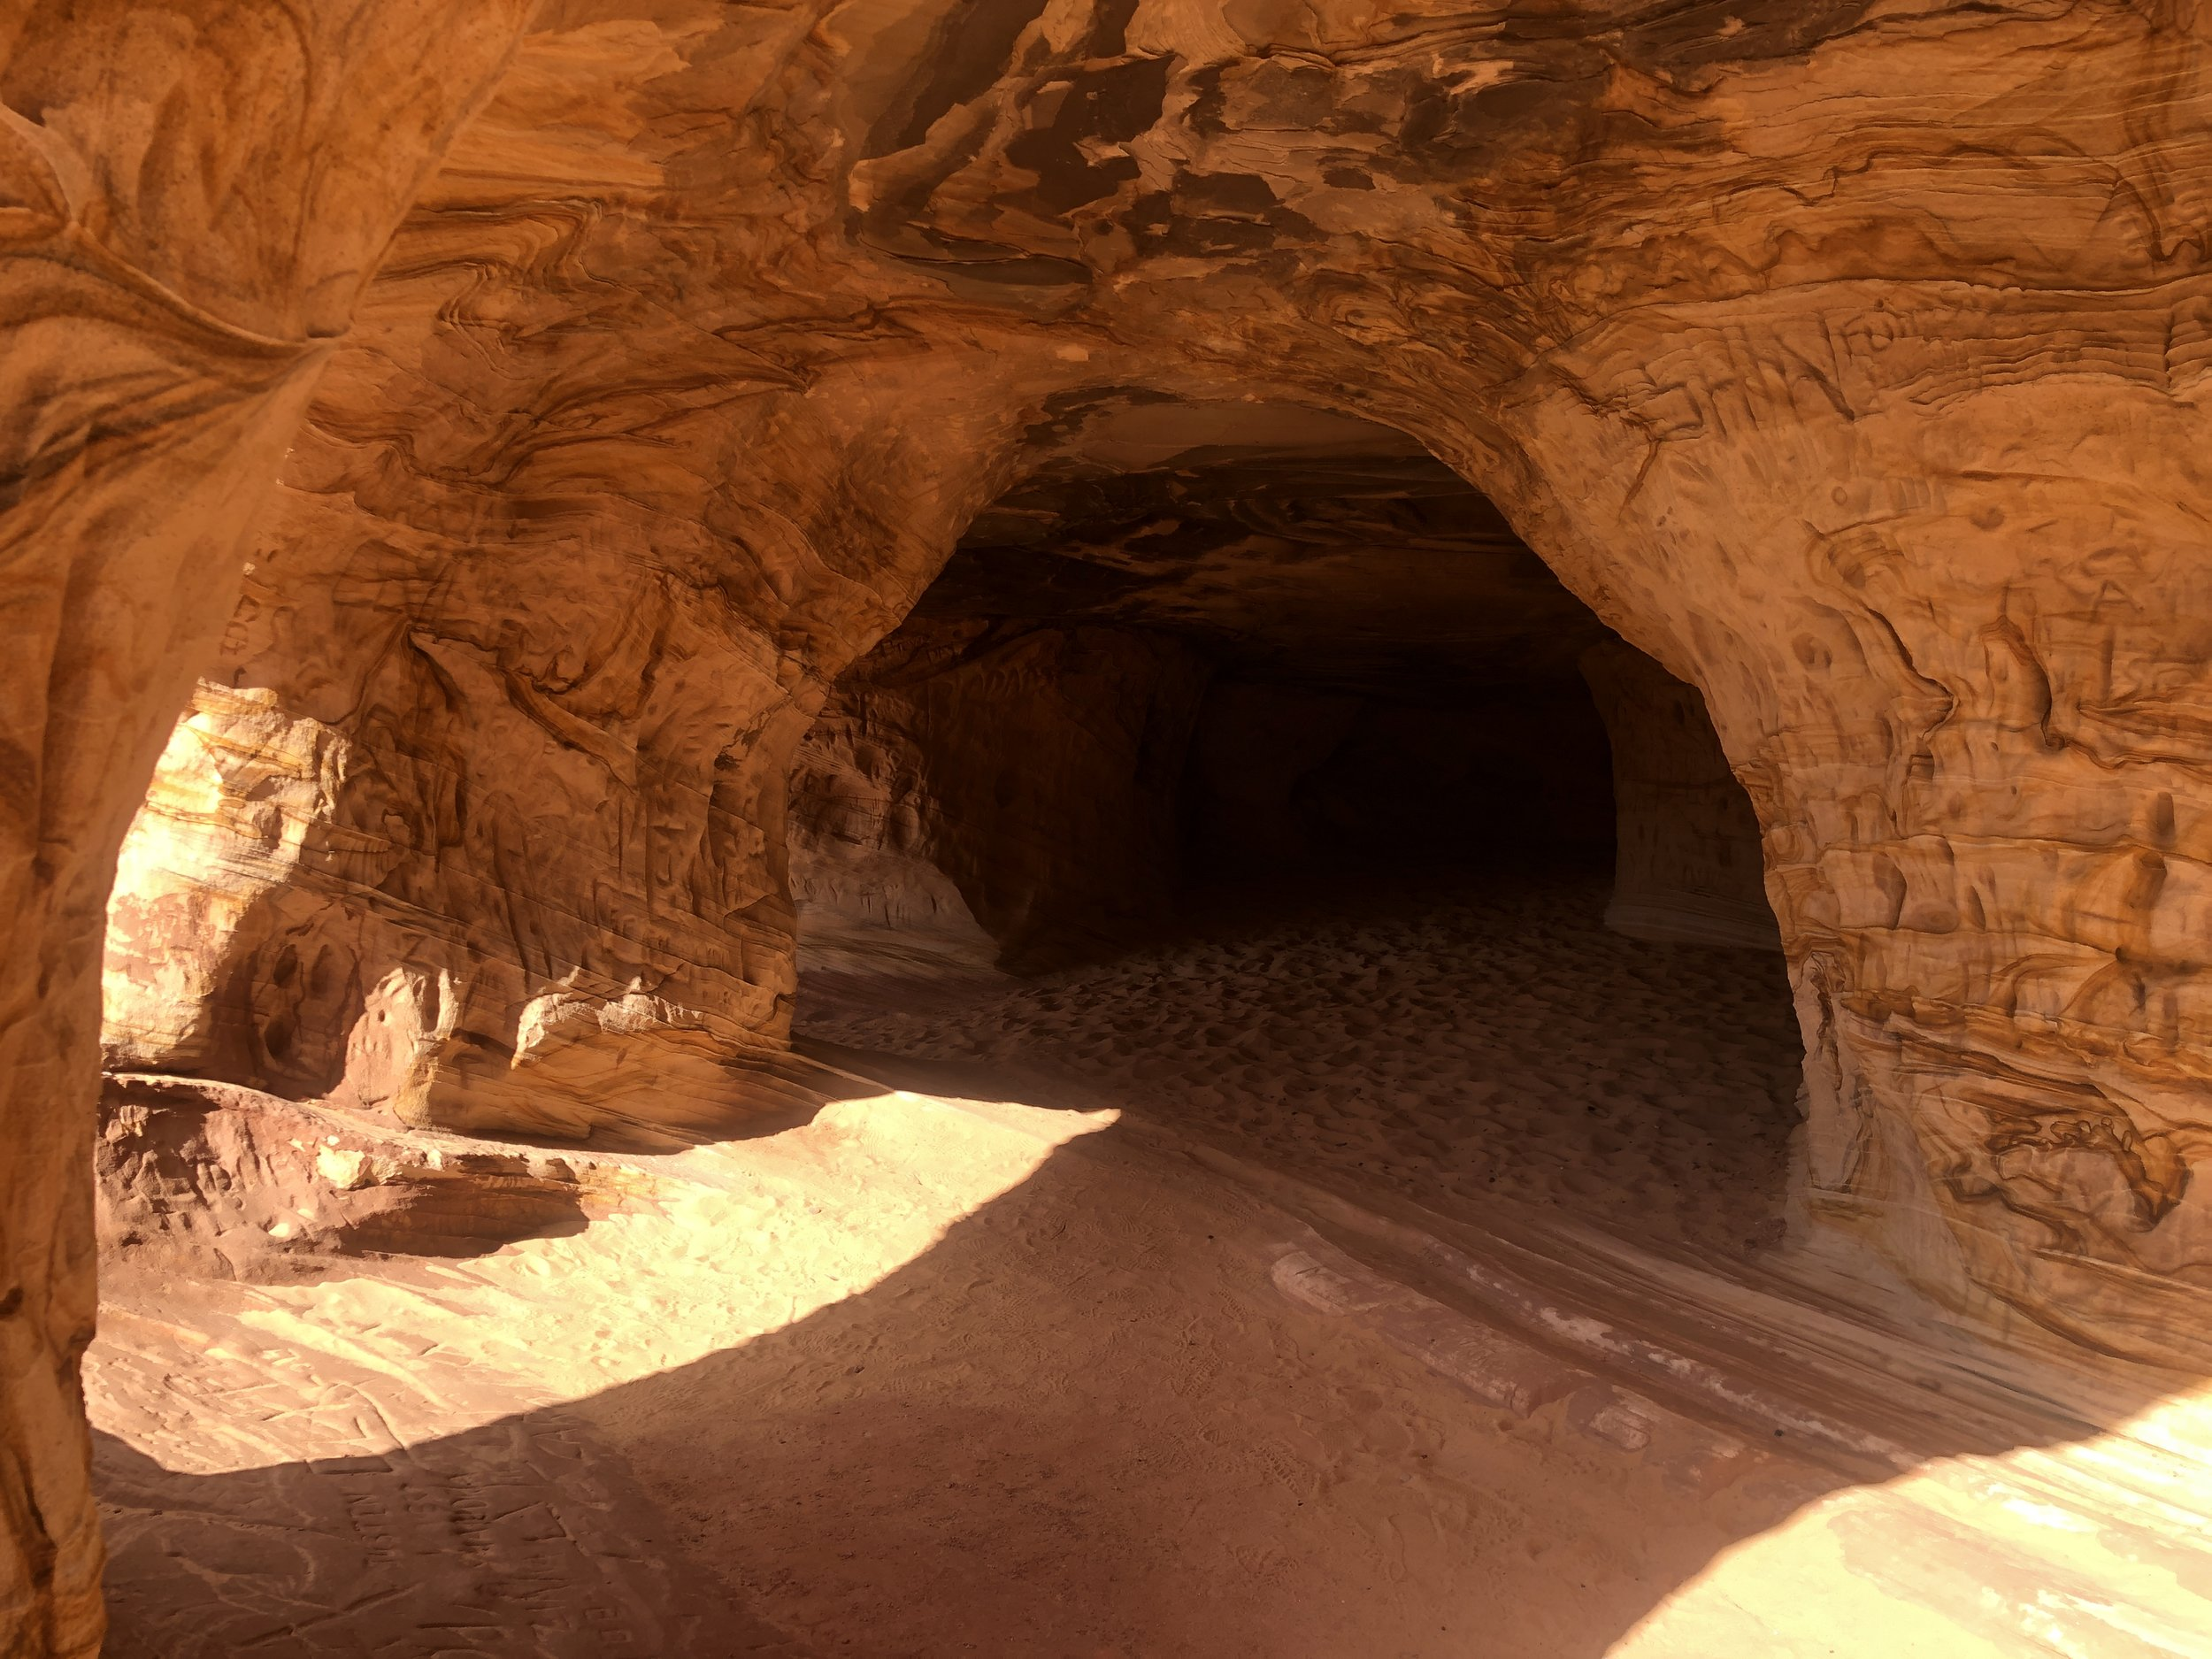 moqui-sand-cave-moki-kanab-utah-out-office-adventure